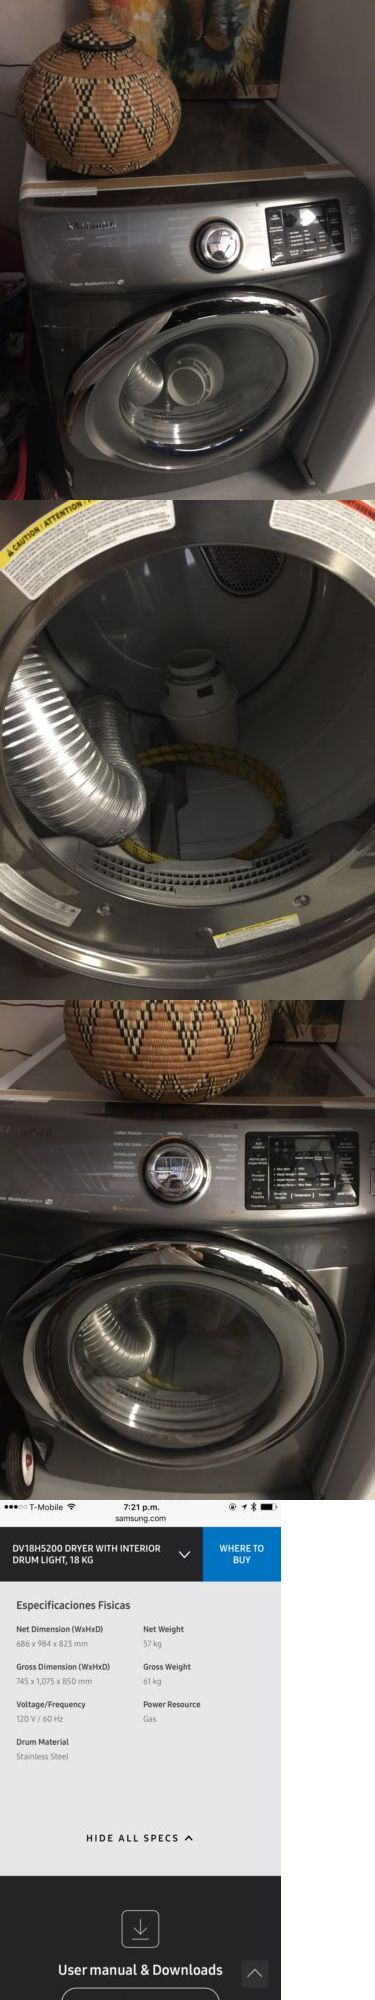 Dryers 71254: Samsung Gas Dryer, Secadora A Gas -> BUY IT NOW ONLY: $300 on eBay!